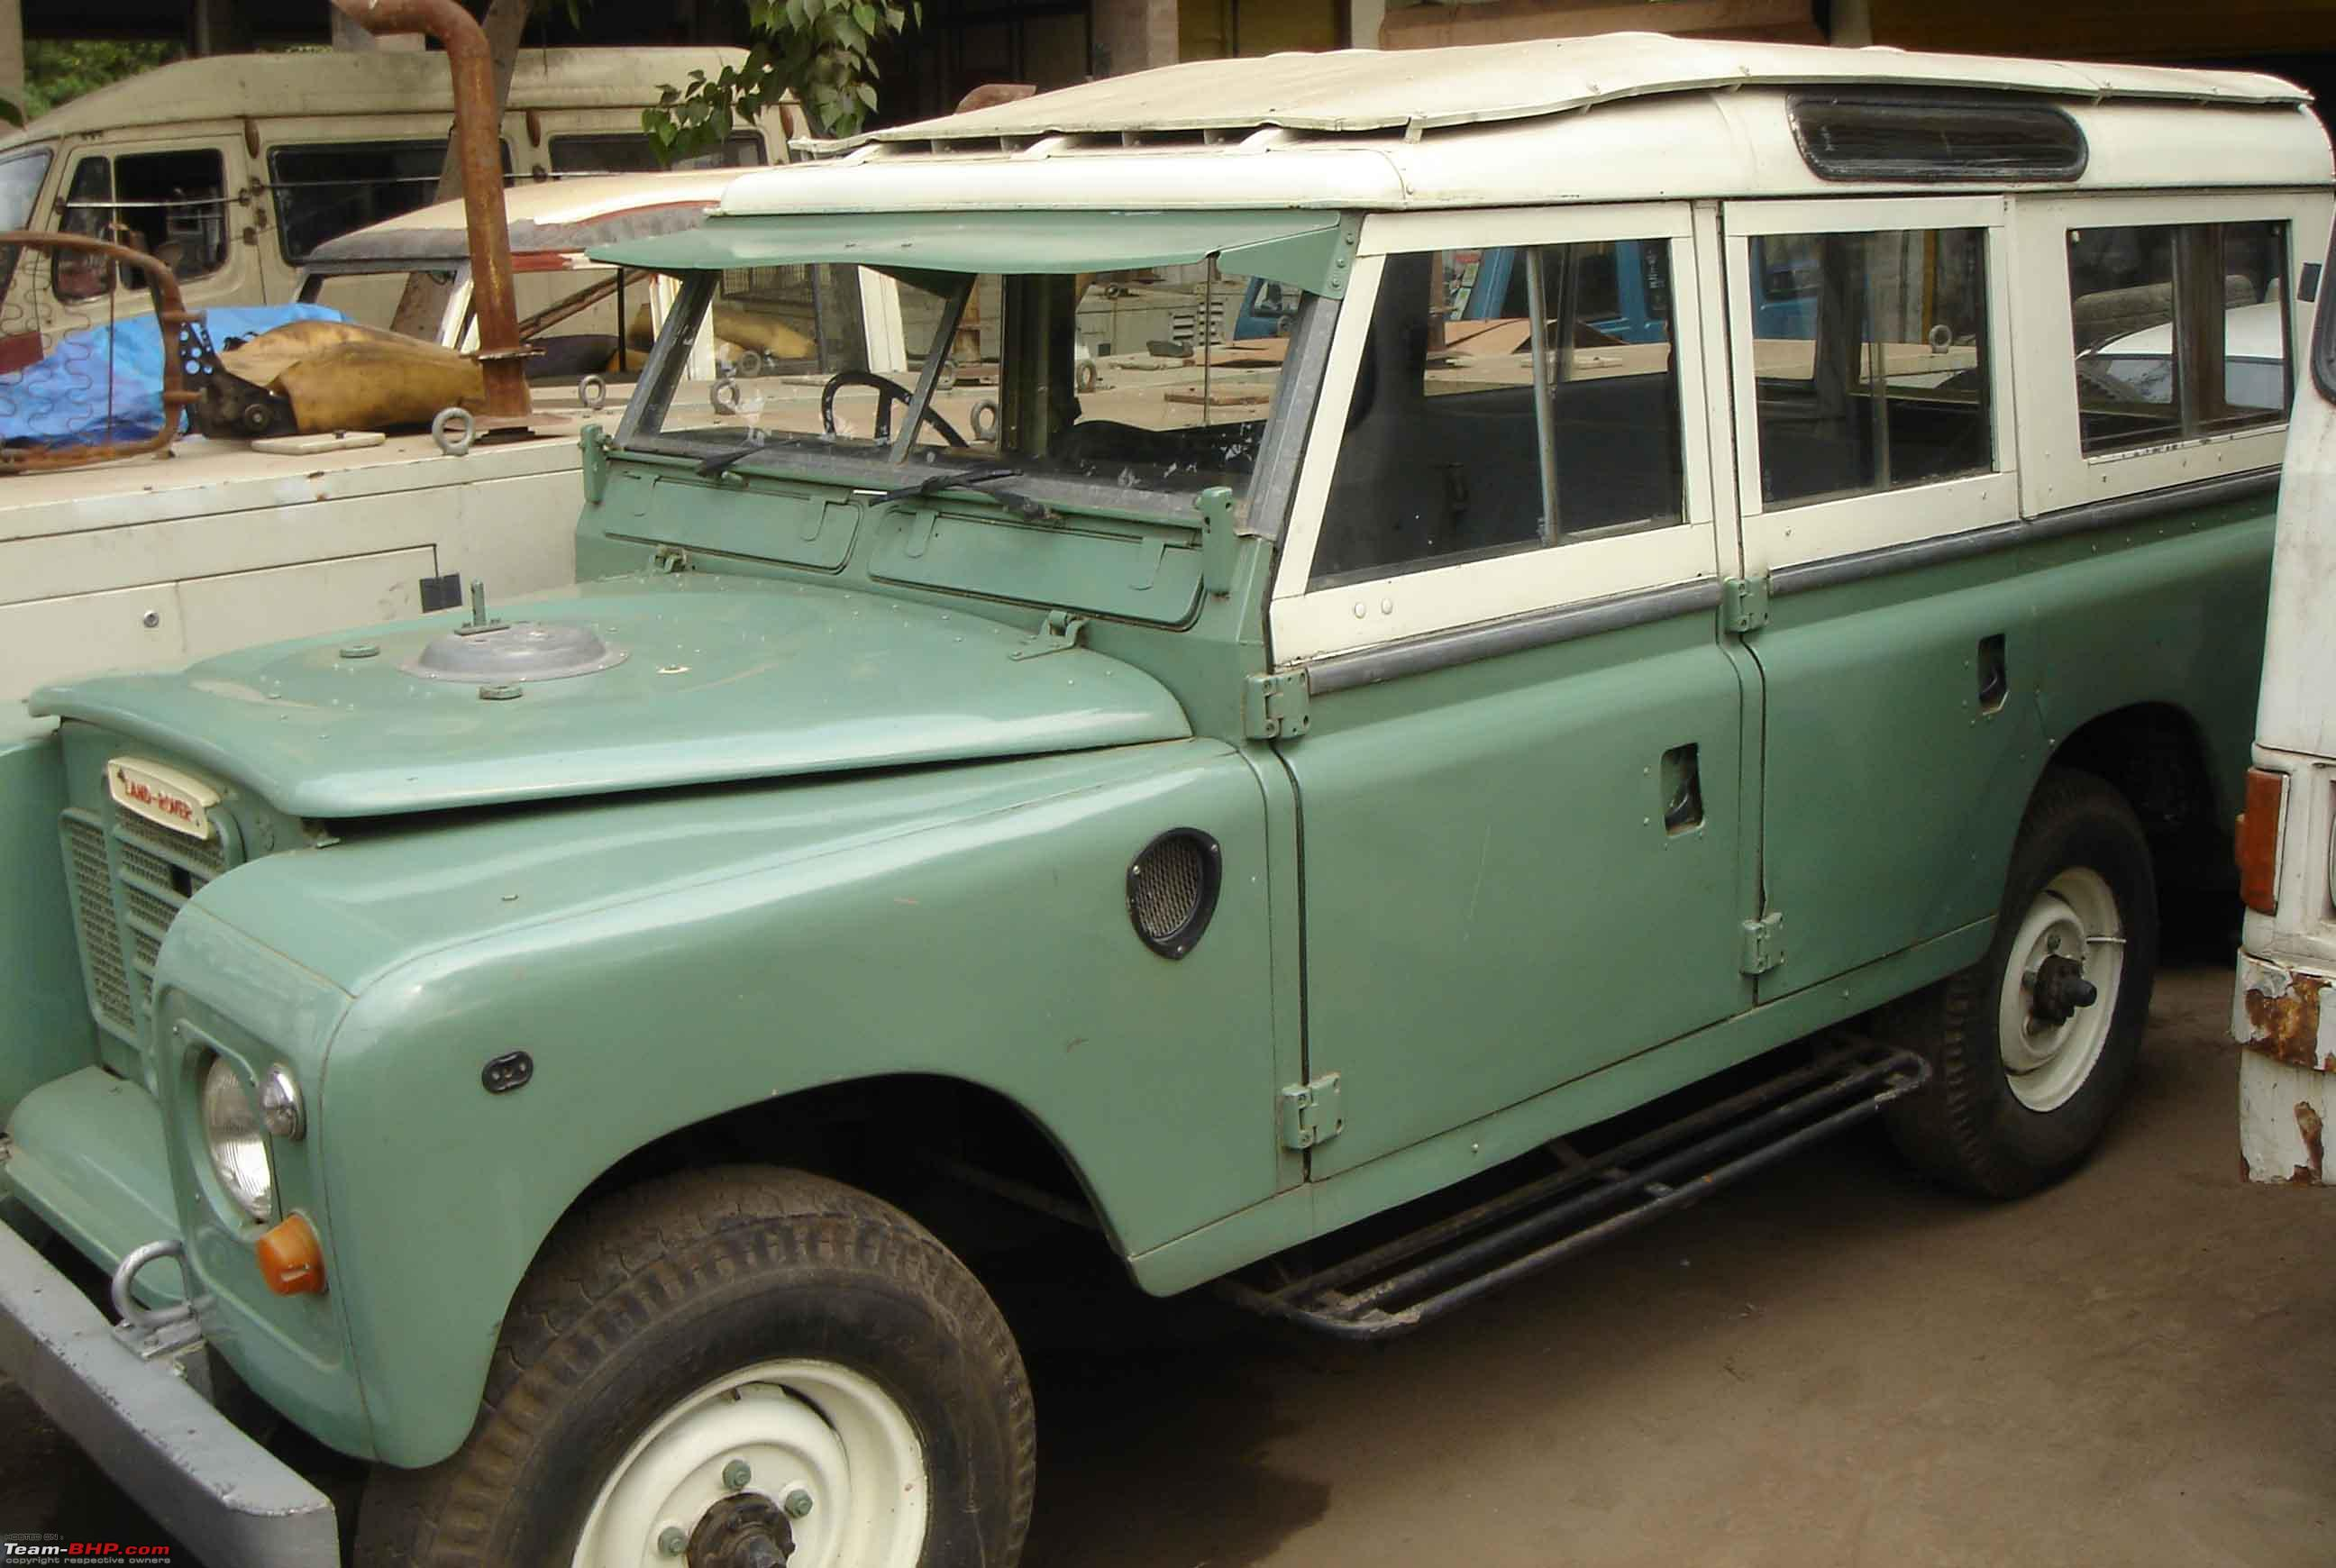 old for by car an rovers sale magazine first landrover edition official defender prices specs of pictures date cabin rover works inside news modernises on favourite land